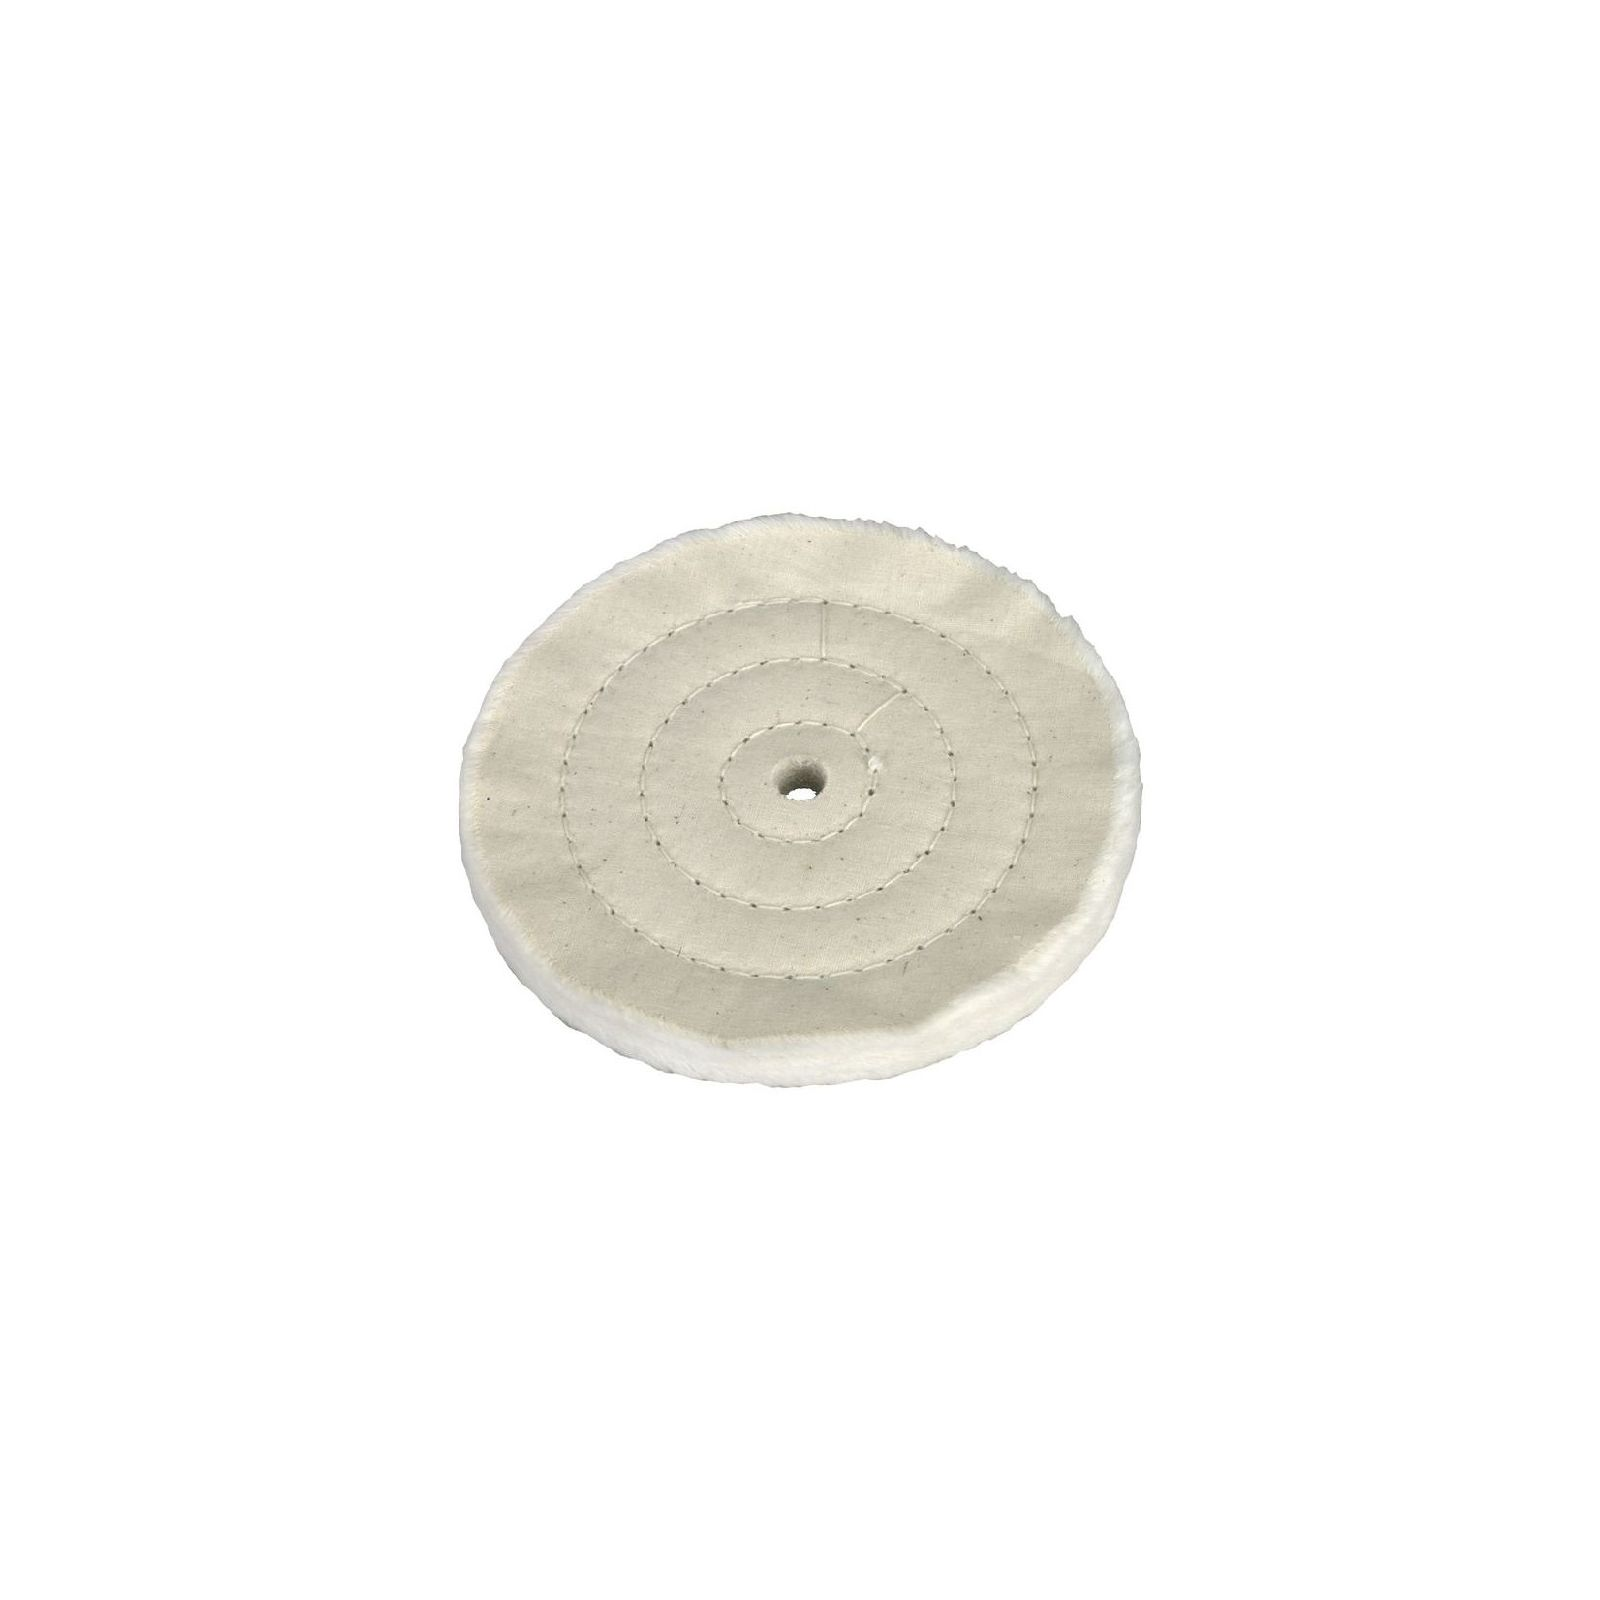 Sealey Buffing Wheel 150mm For Bench Grinder Bench Power Tool Accessories Ebay